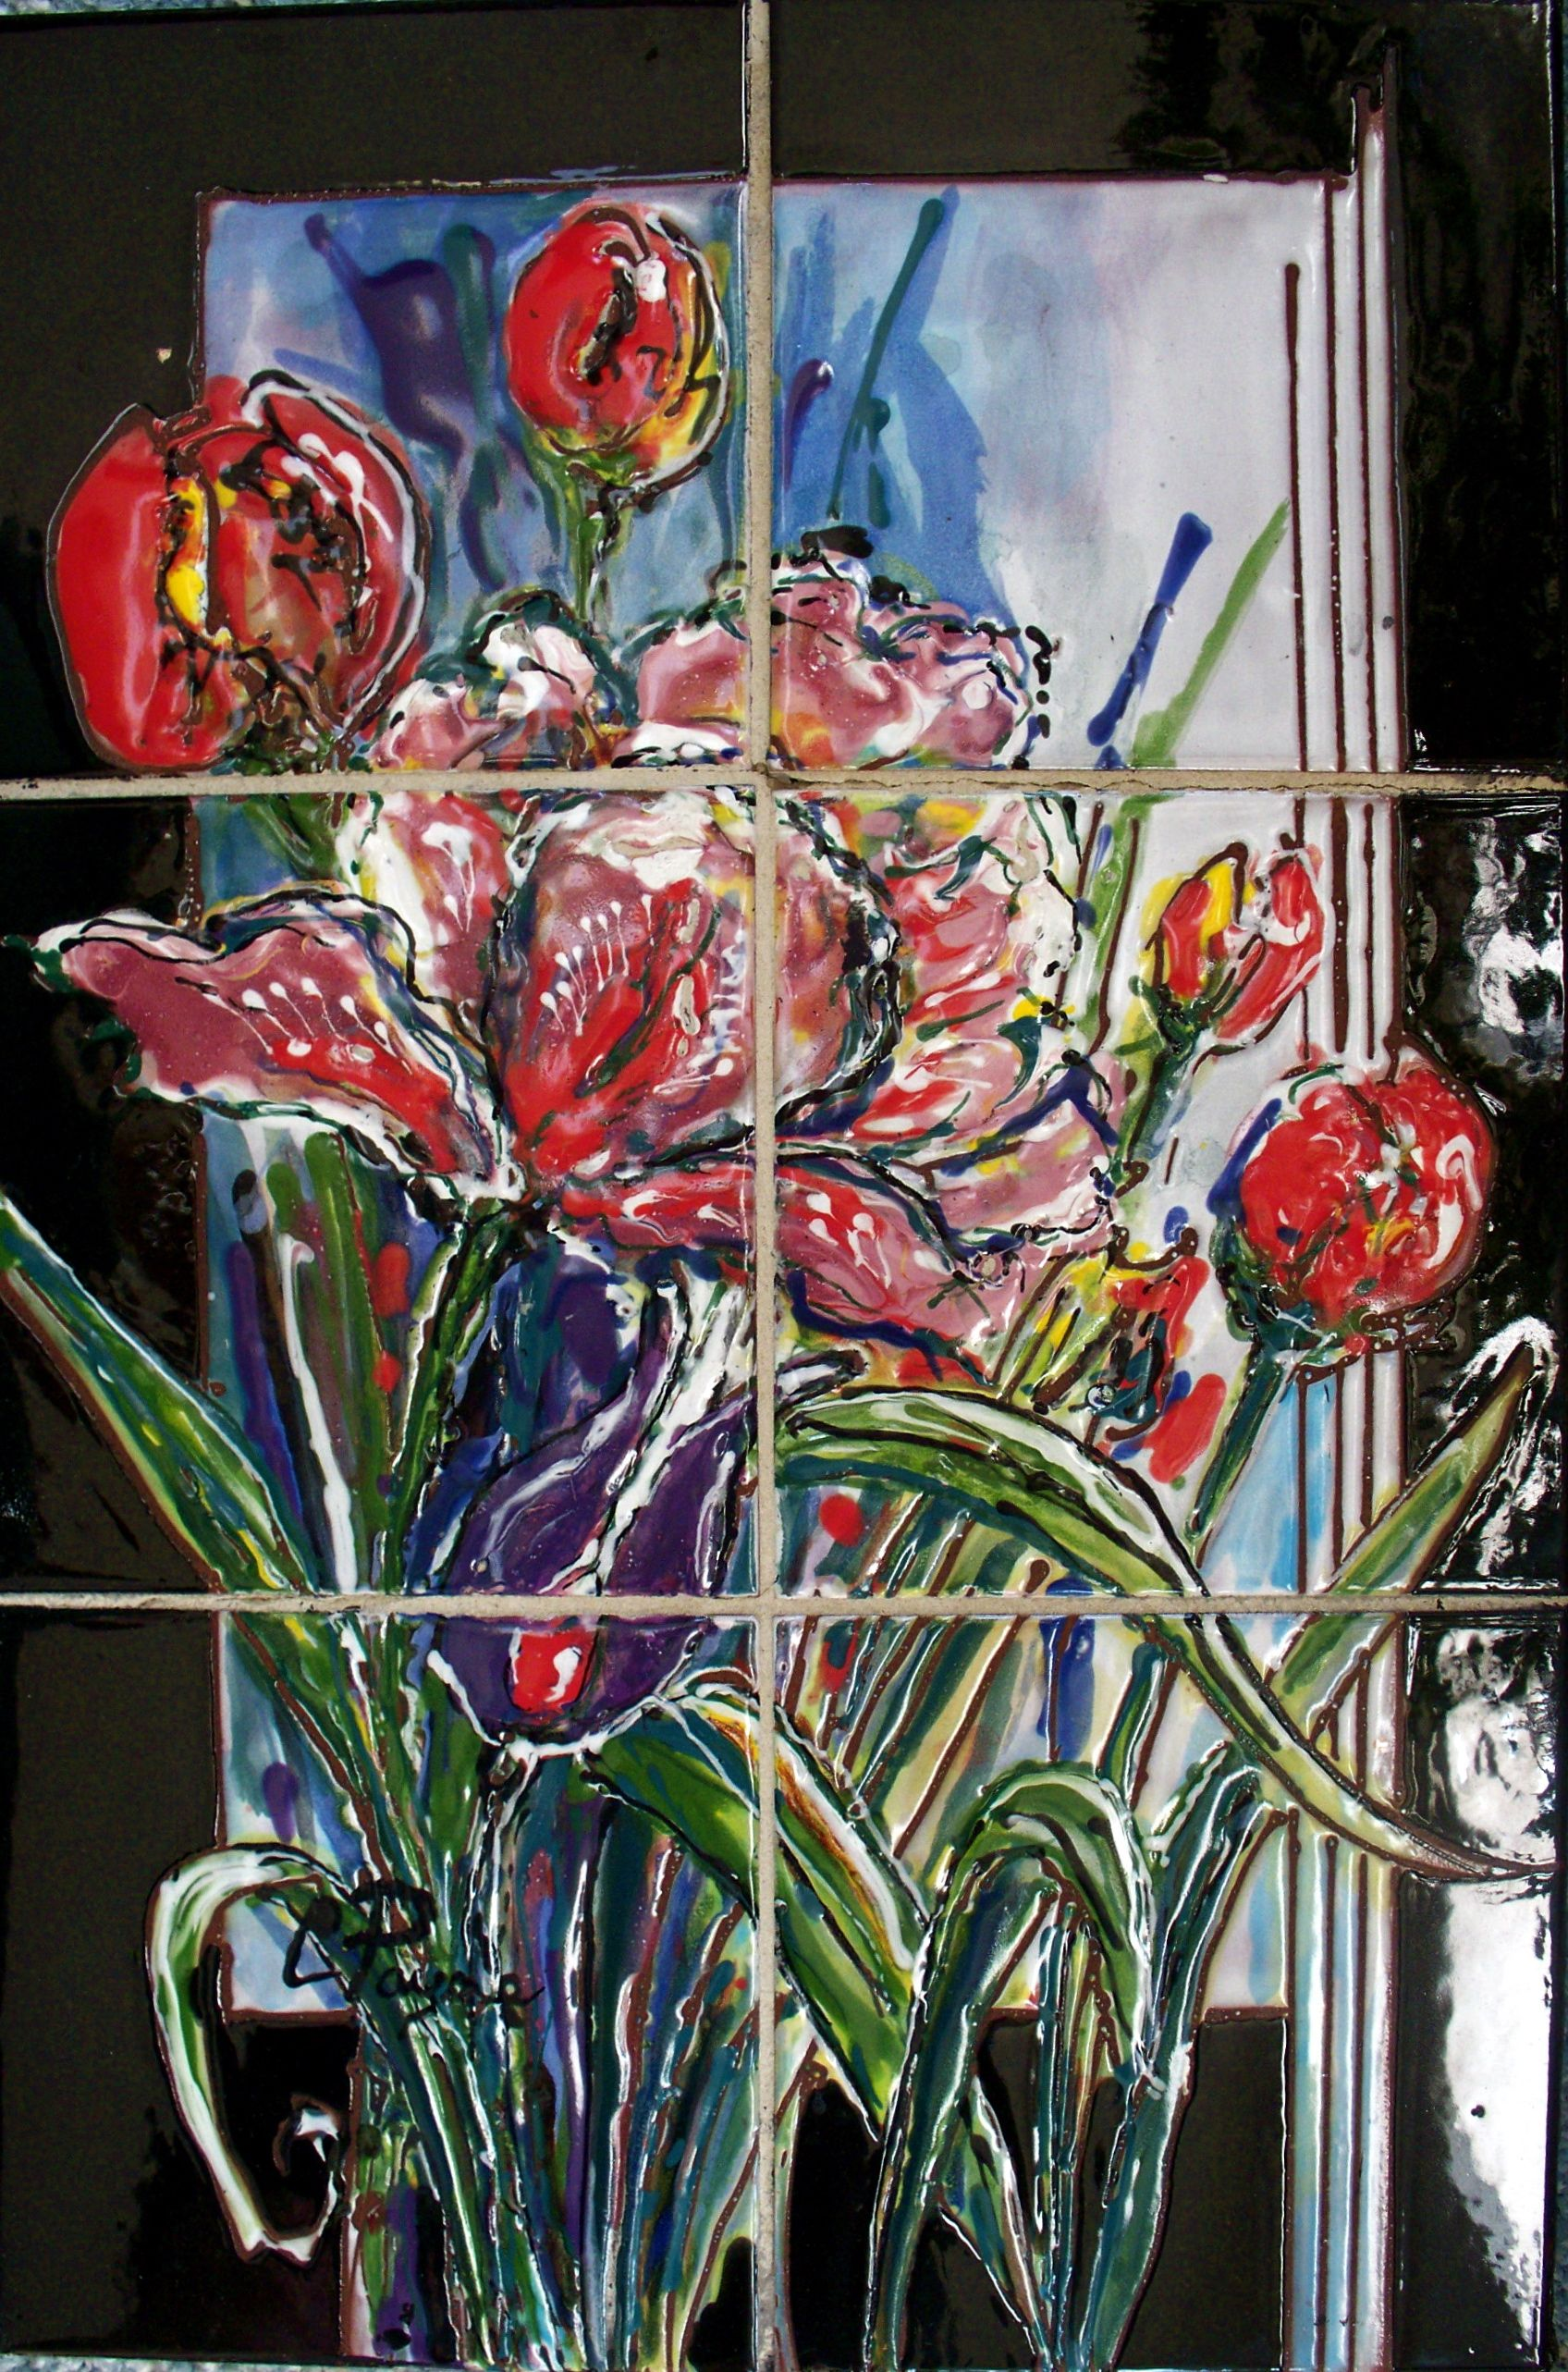 Carolyn payne murals hand painted tile mural tulips6 ceramic carolyn payne murals hand painted tile mural tulips6 ceramic tile doublecrazyfo Images